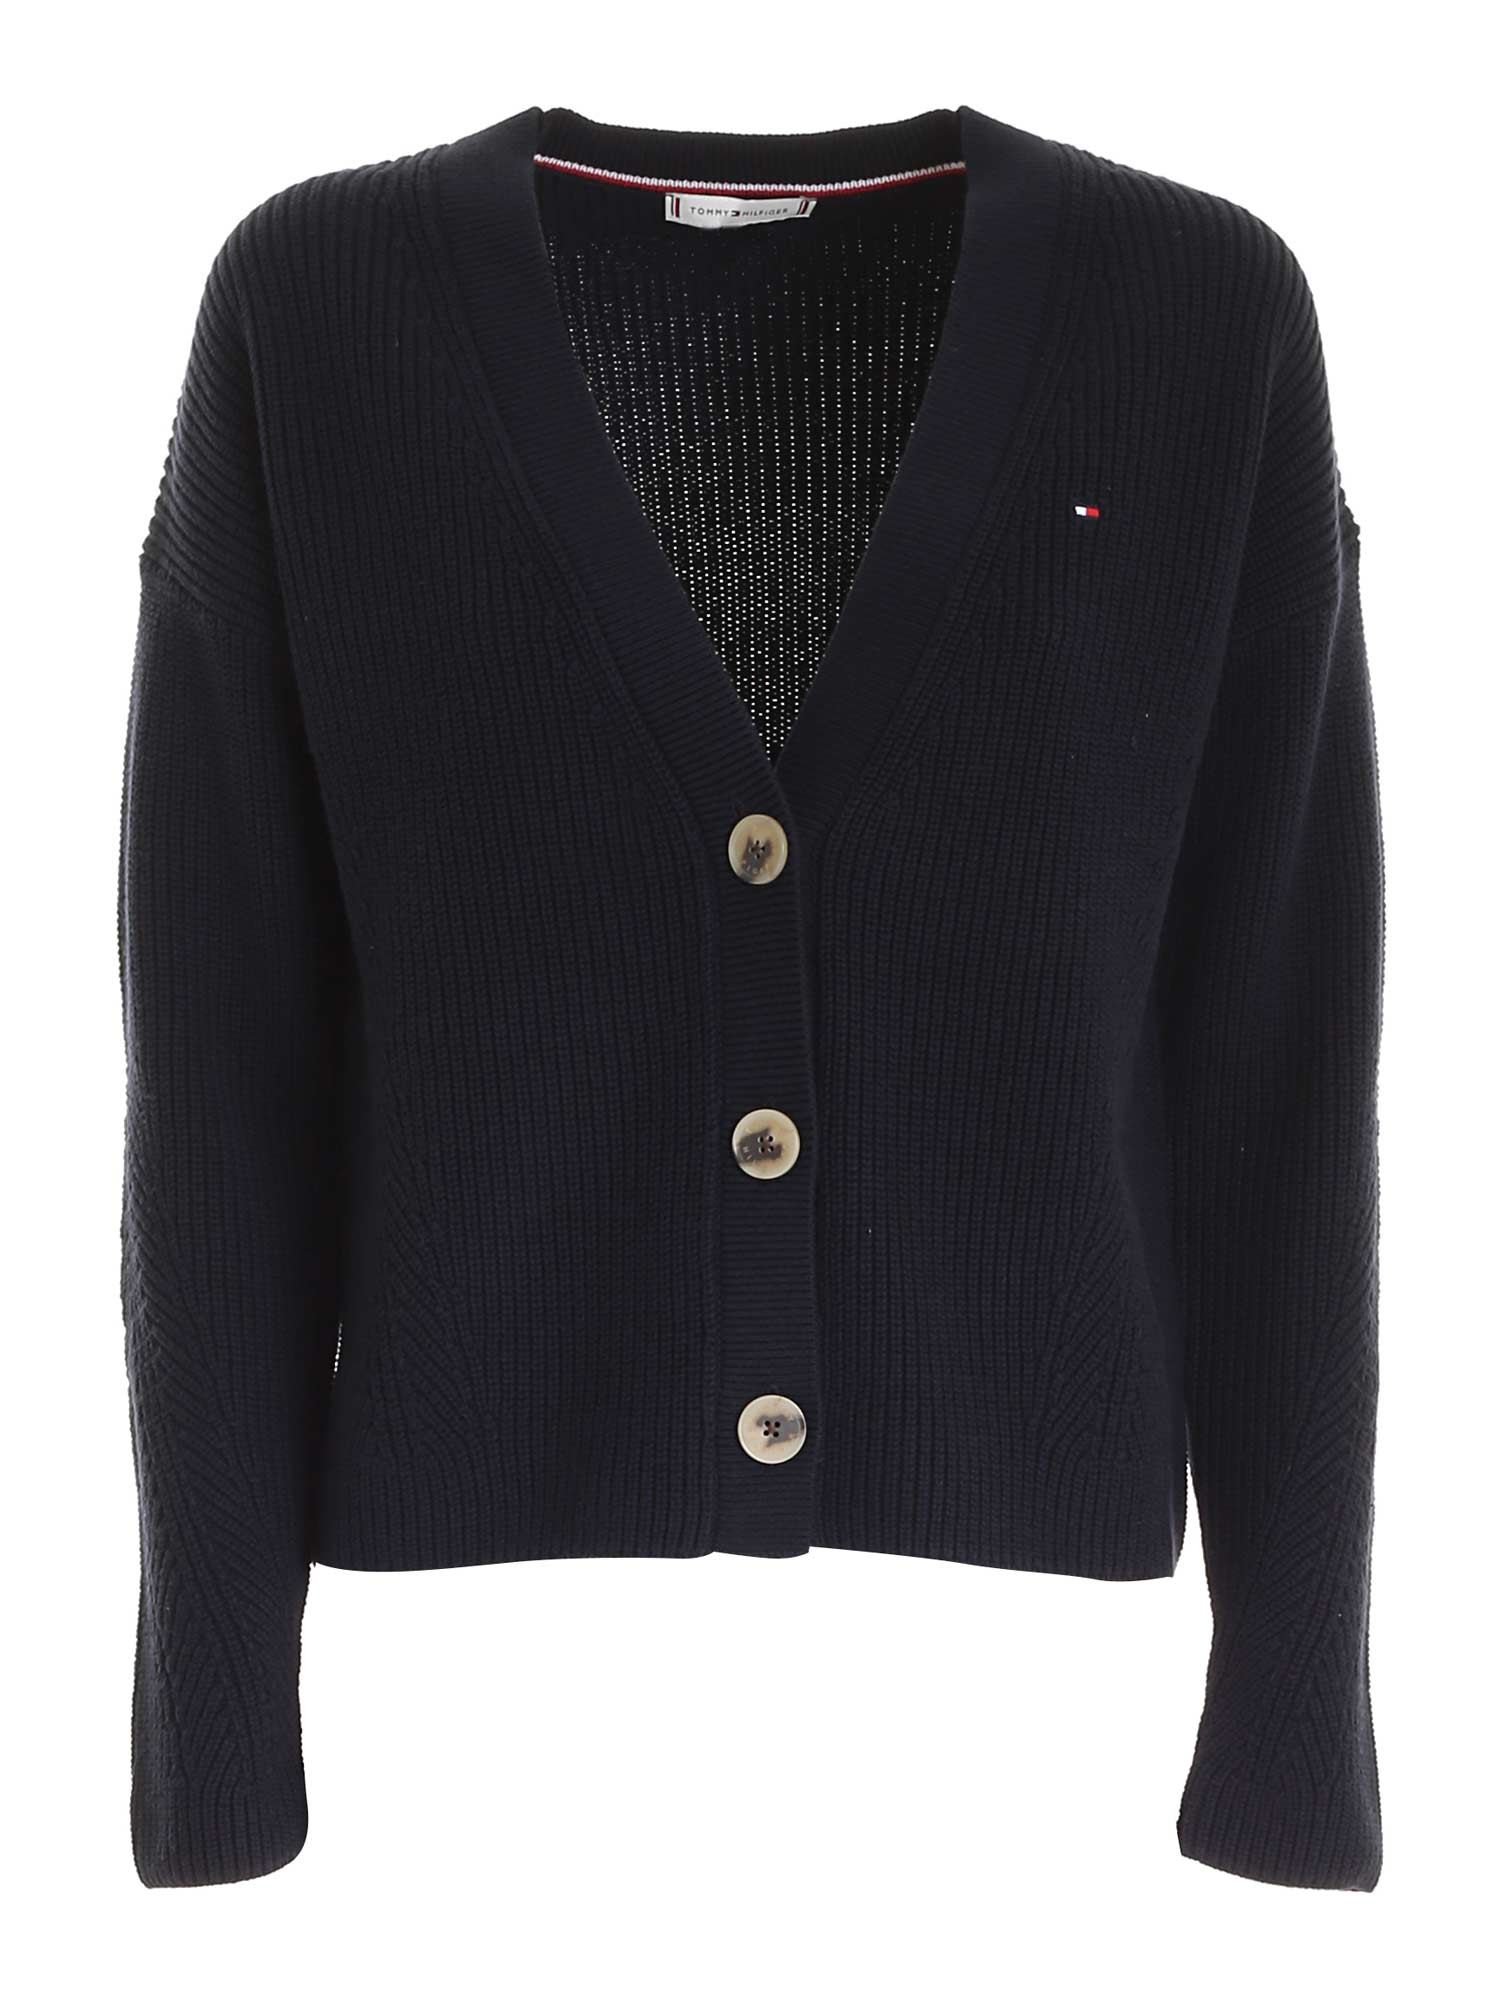 Tommy Hilfiger LOGO EMBROIDERY BOXY CARDIGAN IN BLUE